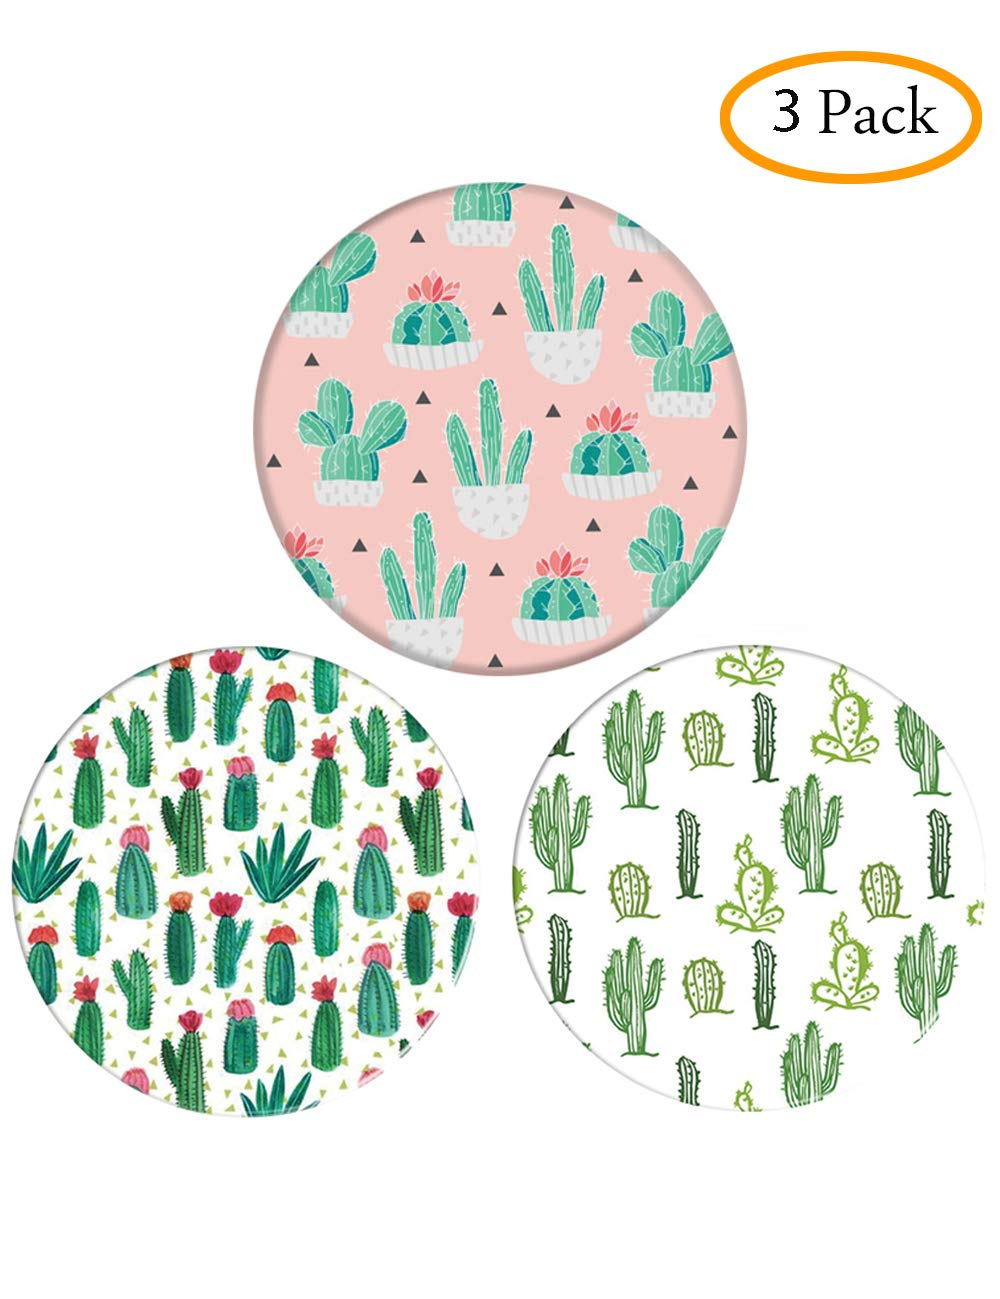 Premium Expanding Phone Stand, Ring Grip Holder for Cellphone Pack of 3 (3-Cacti) Yiqu Technology Limited